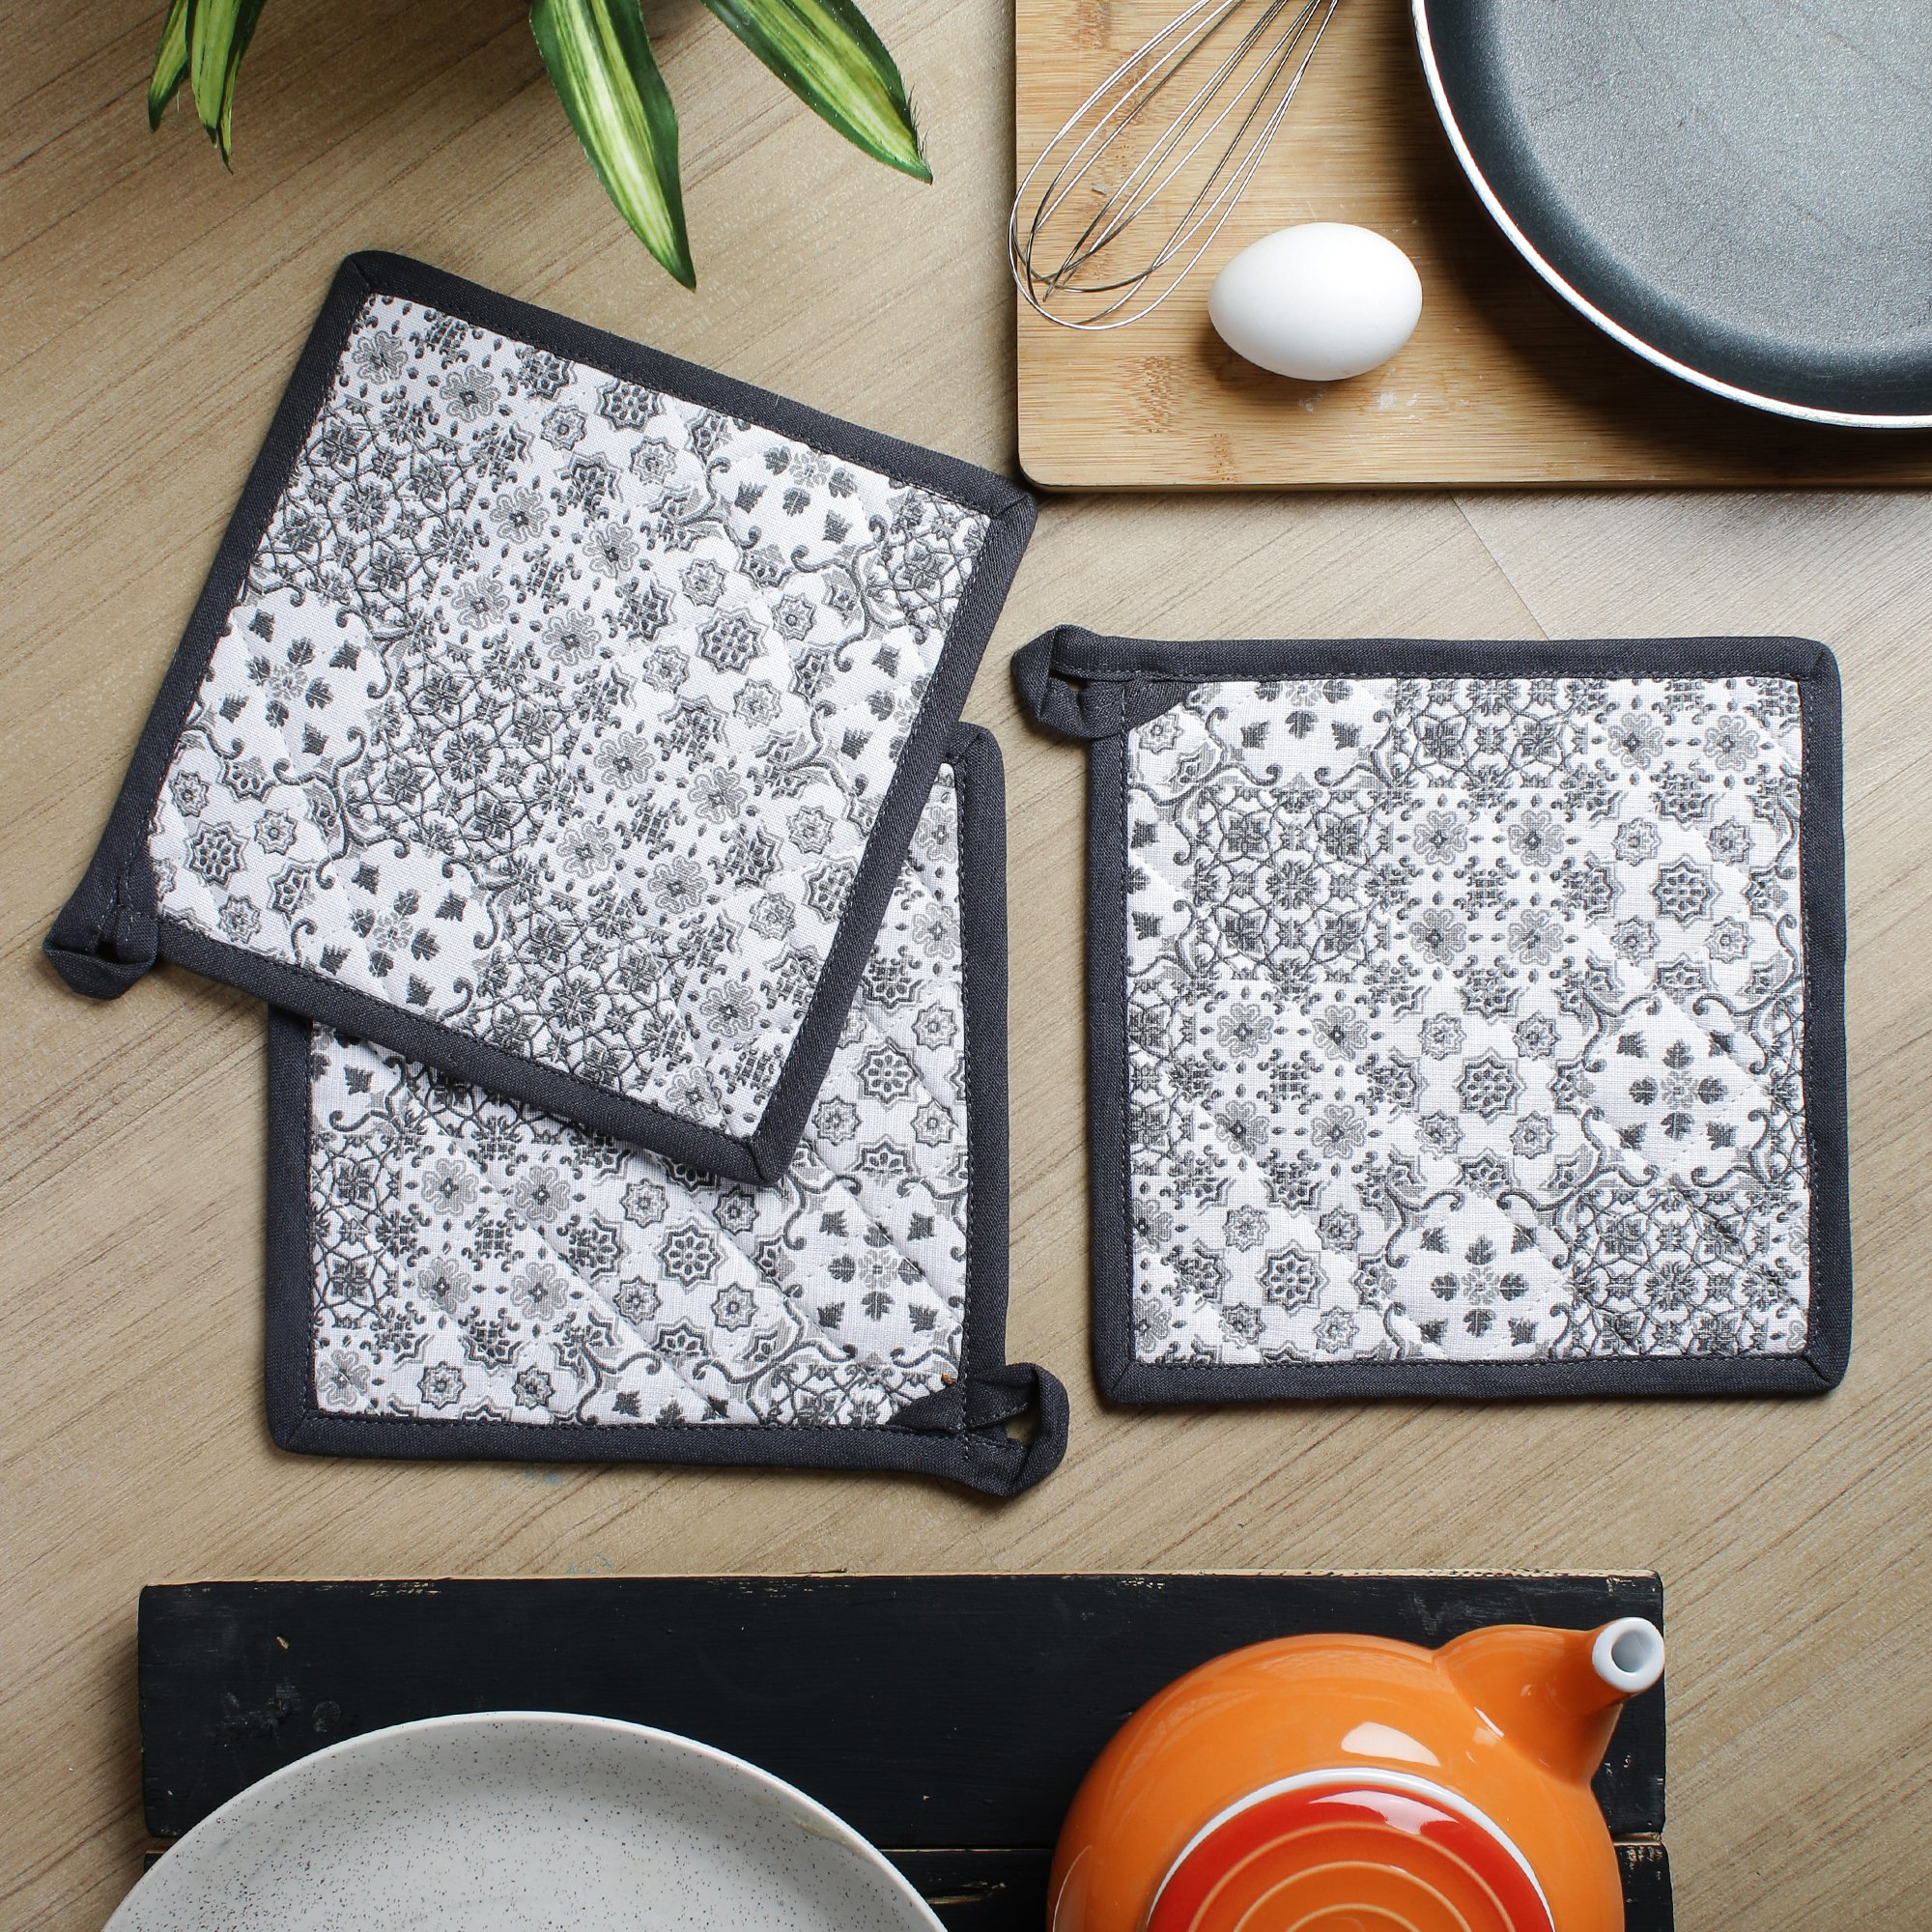 Kitchen Pot Holder, Set of 3, Printed, 100% Cotton, Eco Friendly and Safe, Heat Resistant Suitable for all House Hold Ovens, Size 8 X 8 Inch by AZHAGU